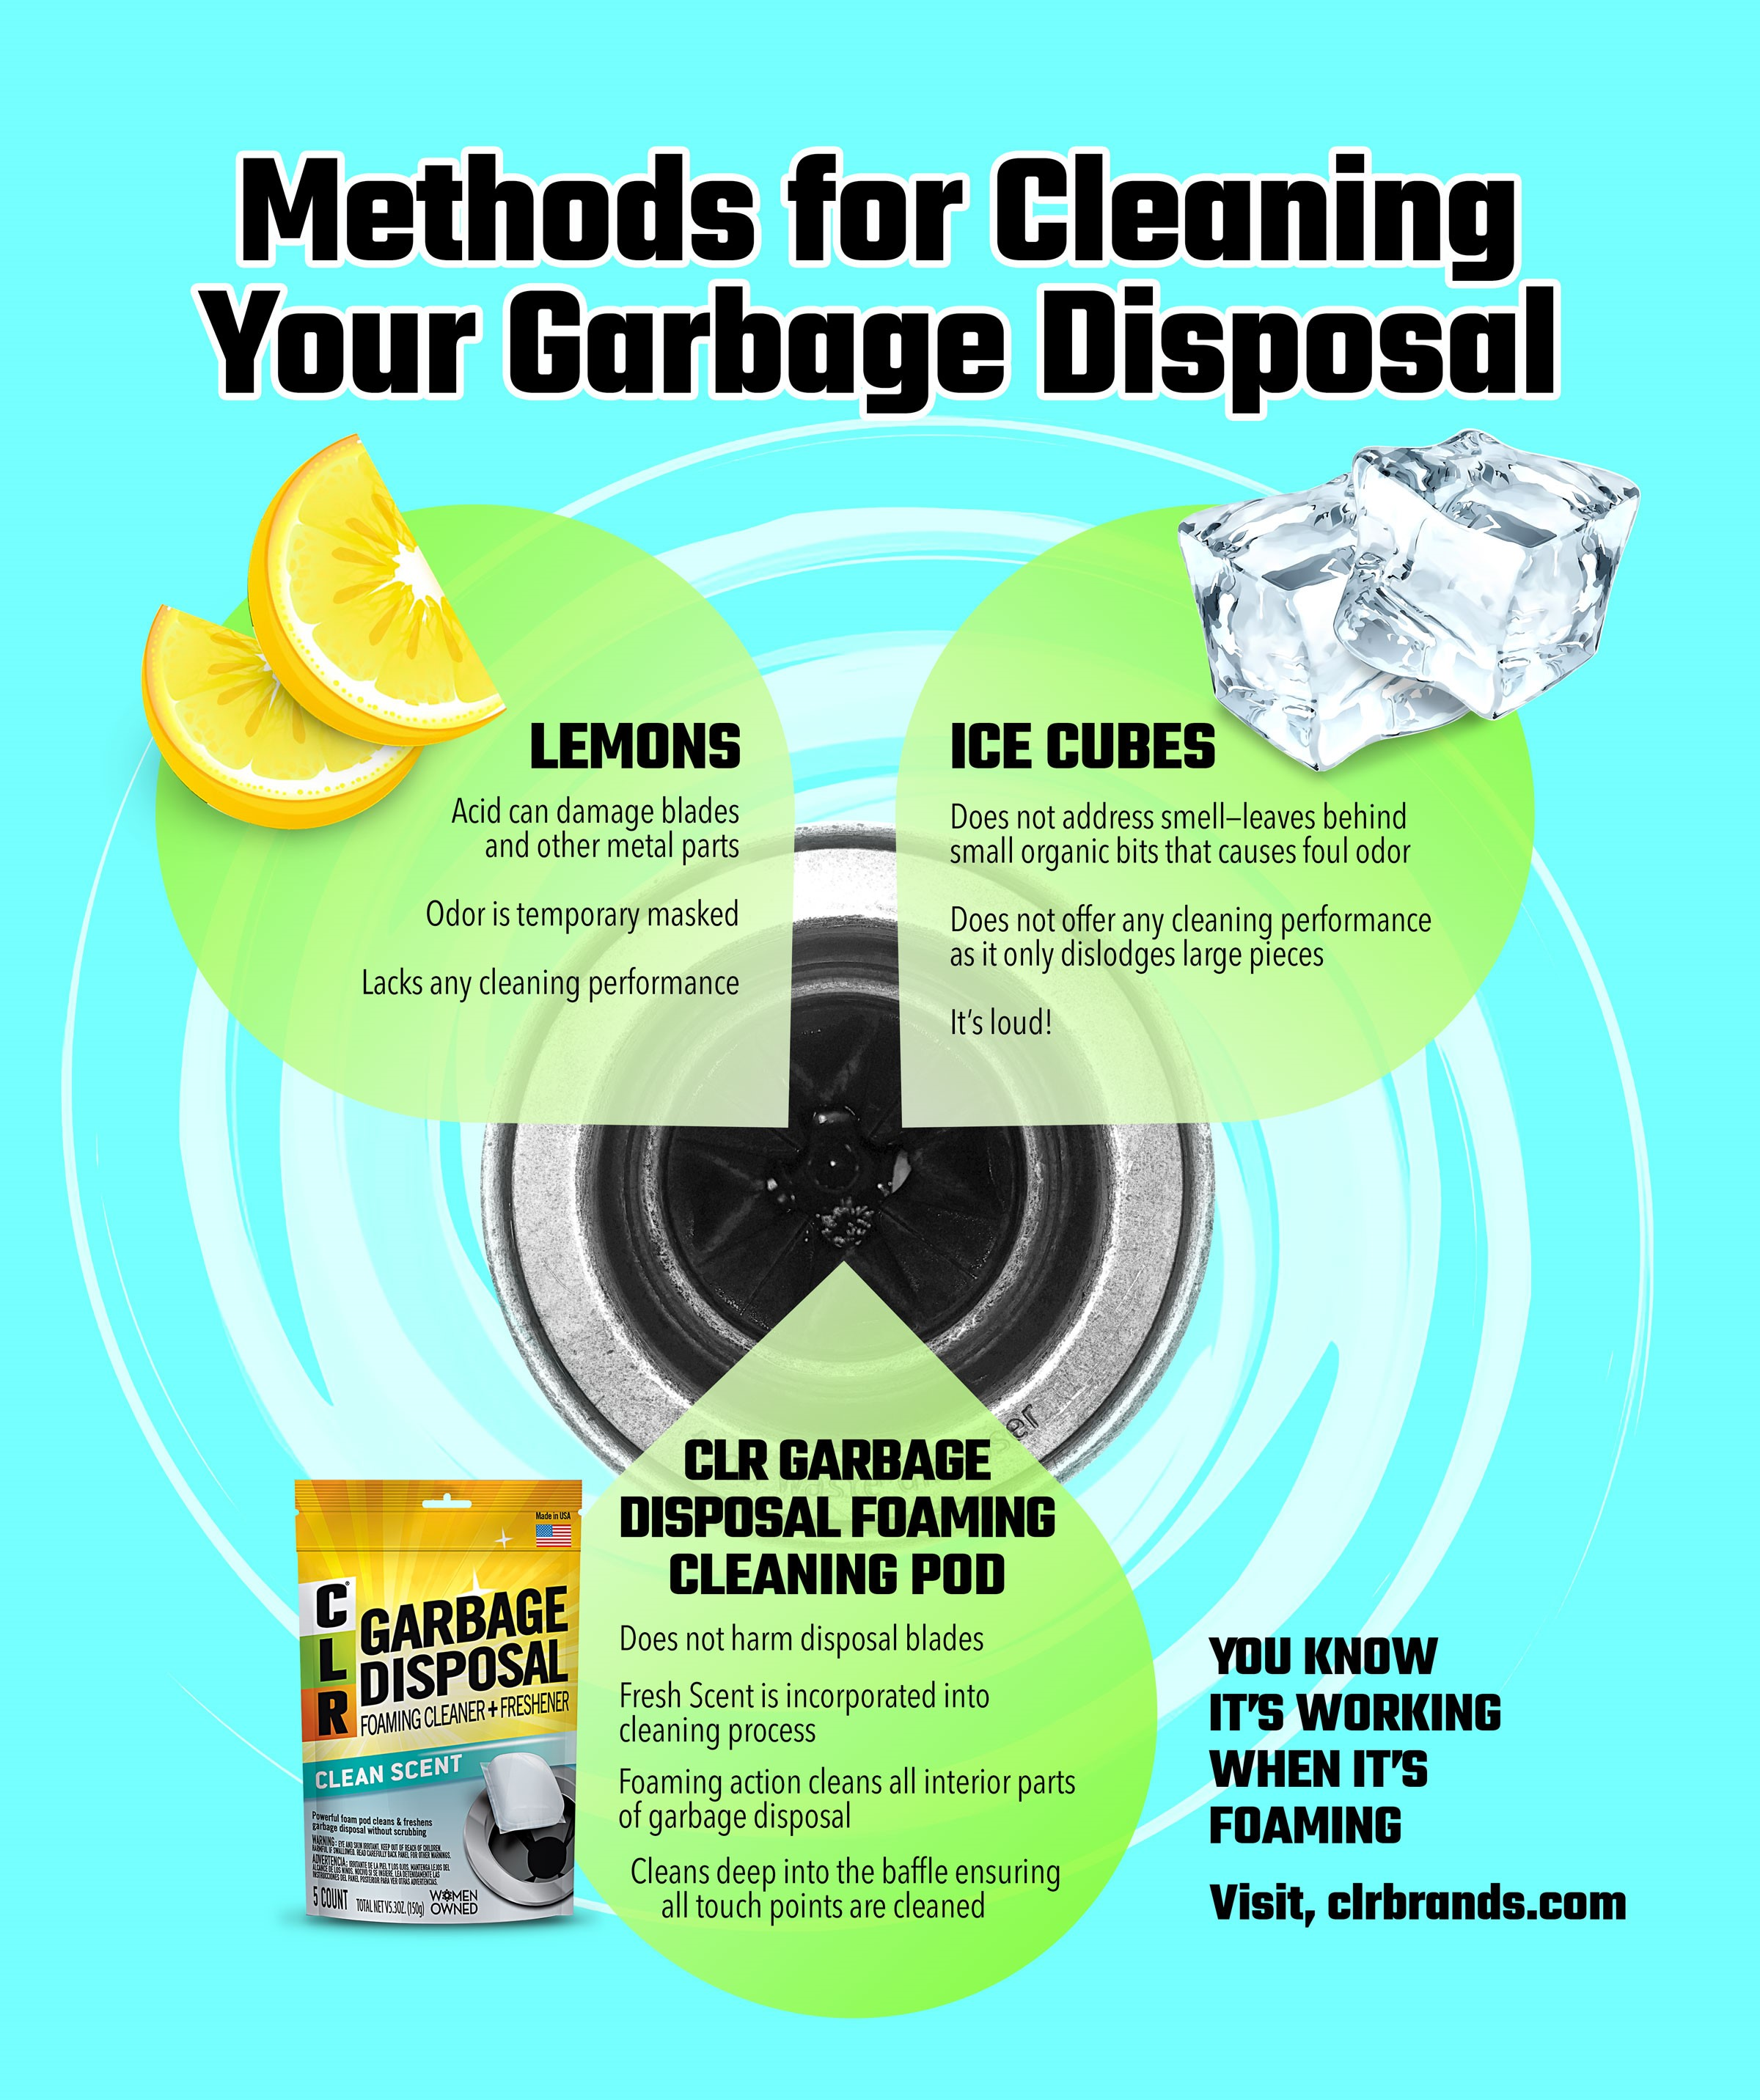 CLR Garbage Disposal Cleaner Pods, Clean Scent, 5 Count Pouch ...